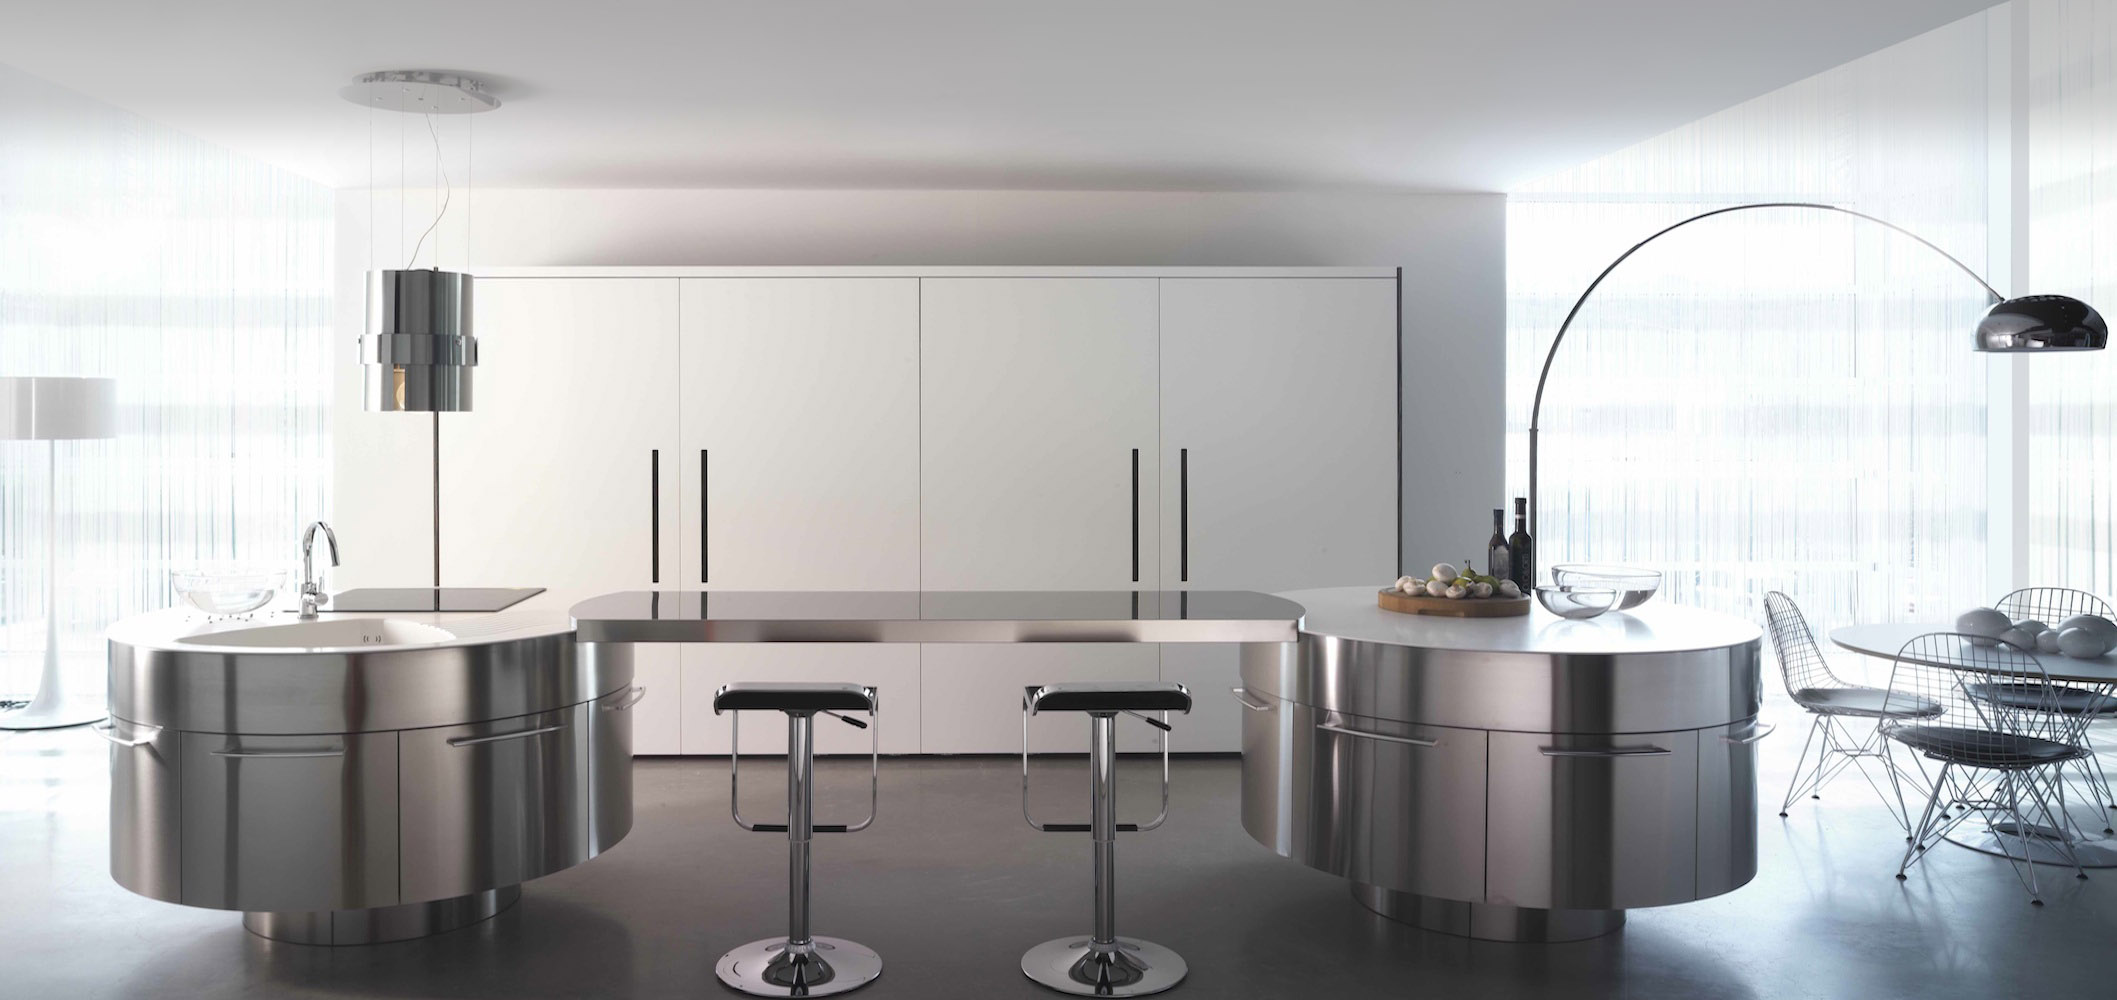 Twin circular metallic islands are connected via metal countertop bridge in this modern kitchen. Large white flush cabinet doors stand over dark flooring, with floor to ceiling windows in background.